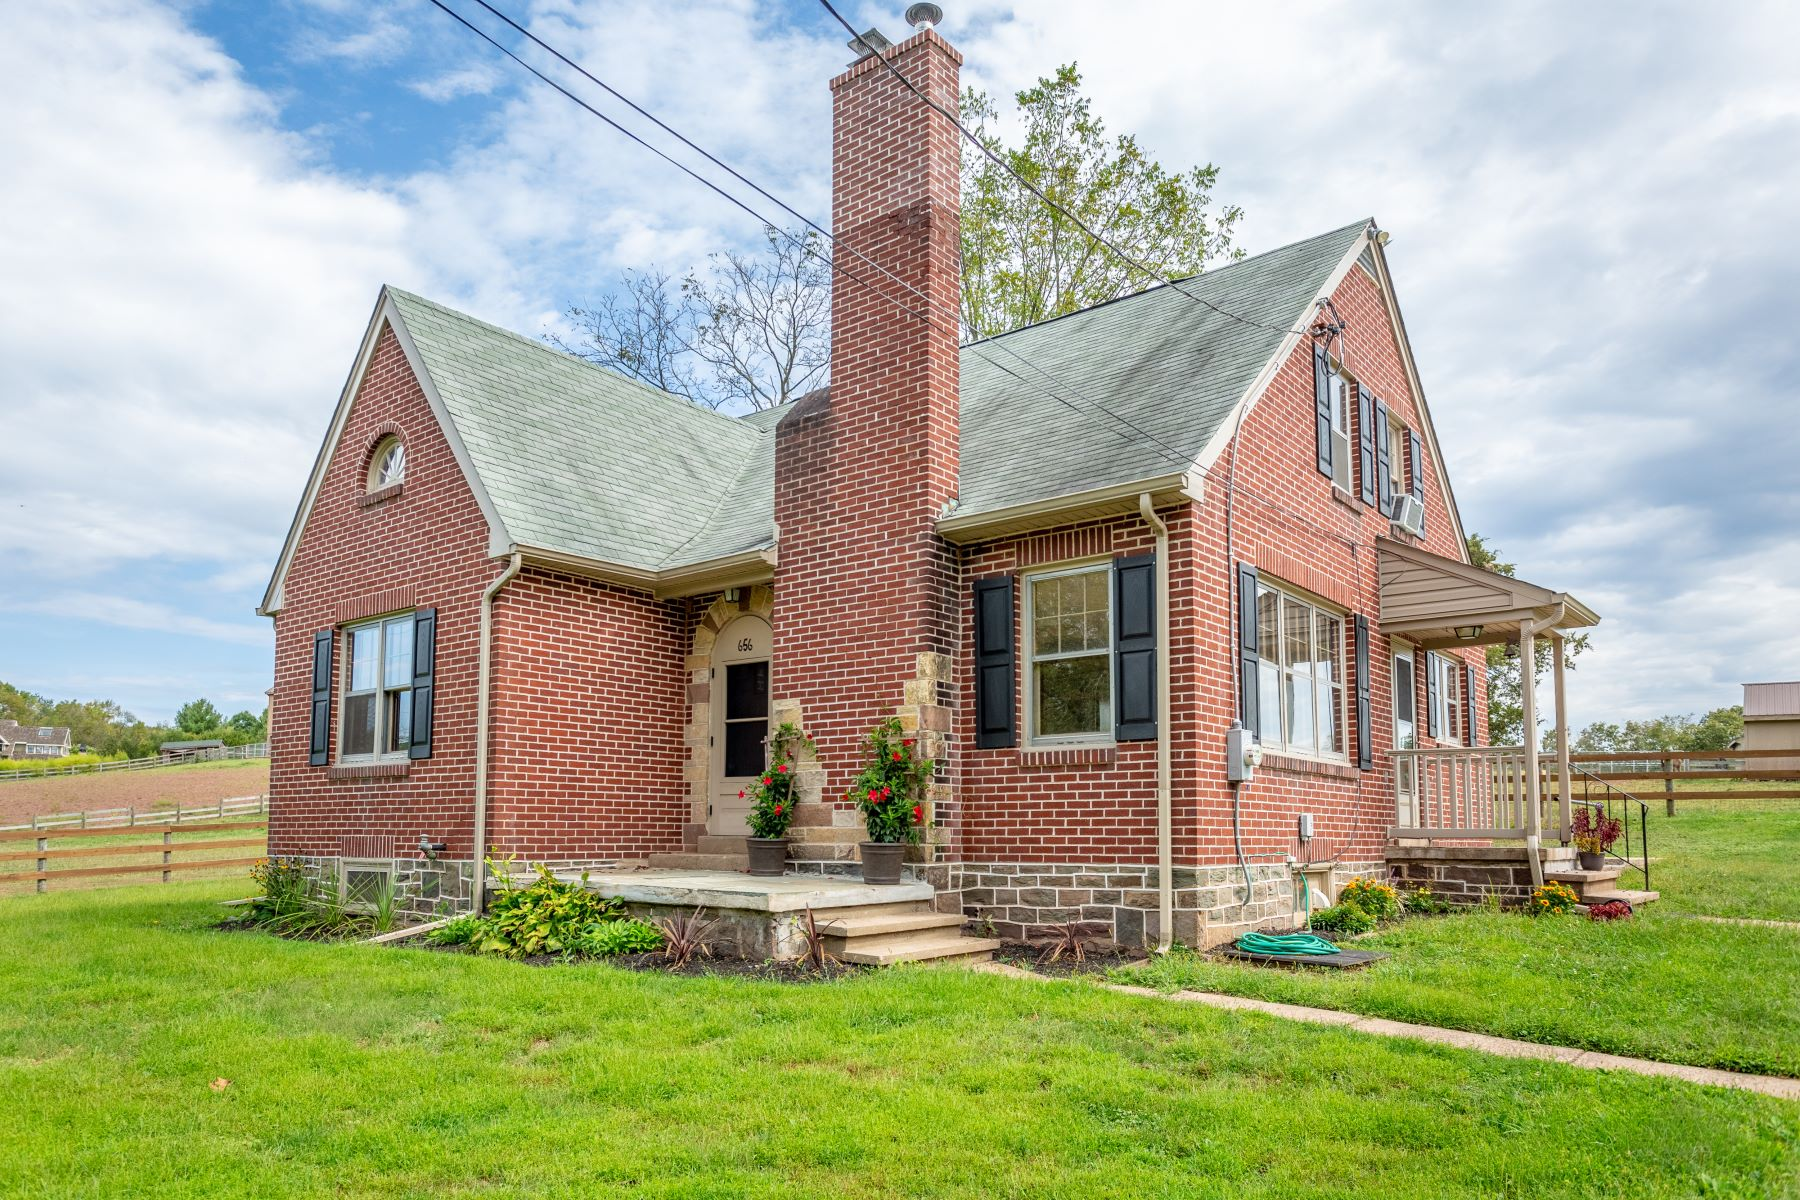 Single Family Homes for Sale at 656 QUARRY RD Harleysville, Pennsylvania 19438 United States